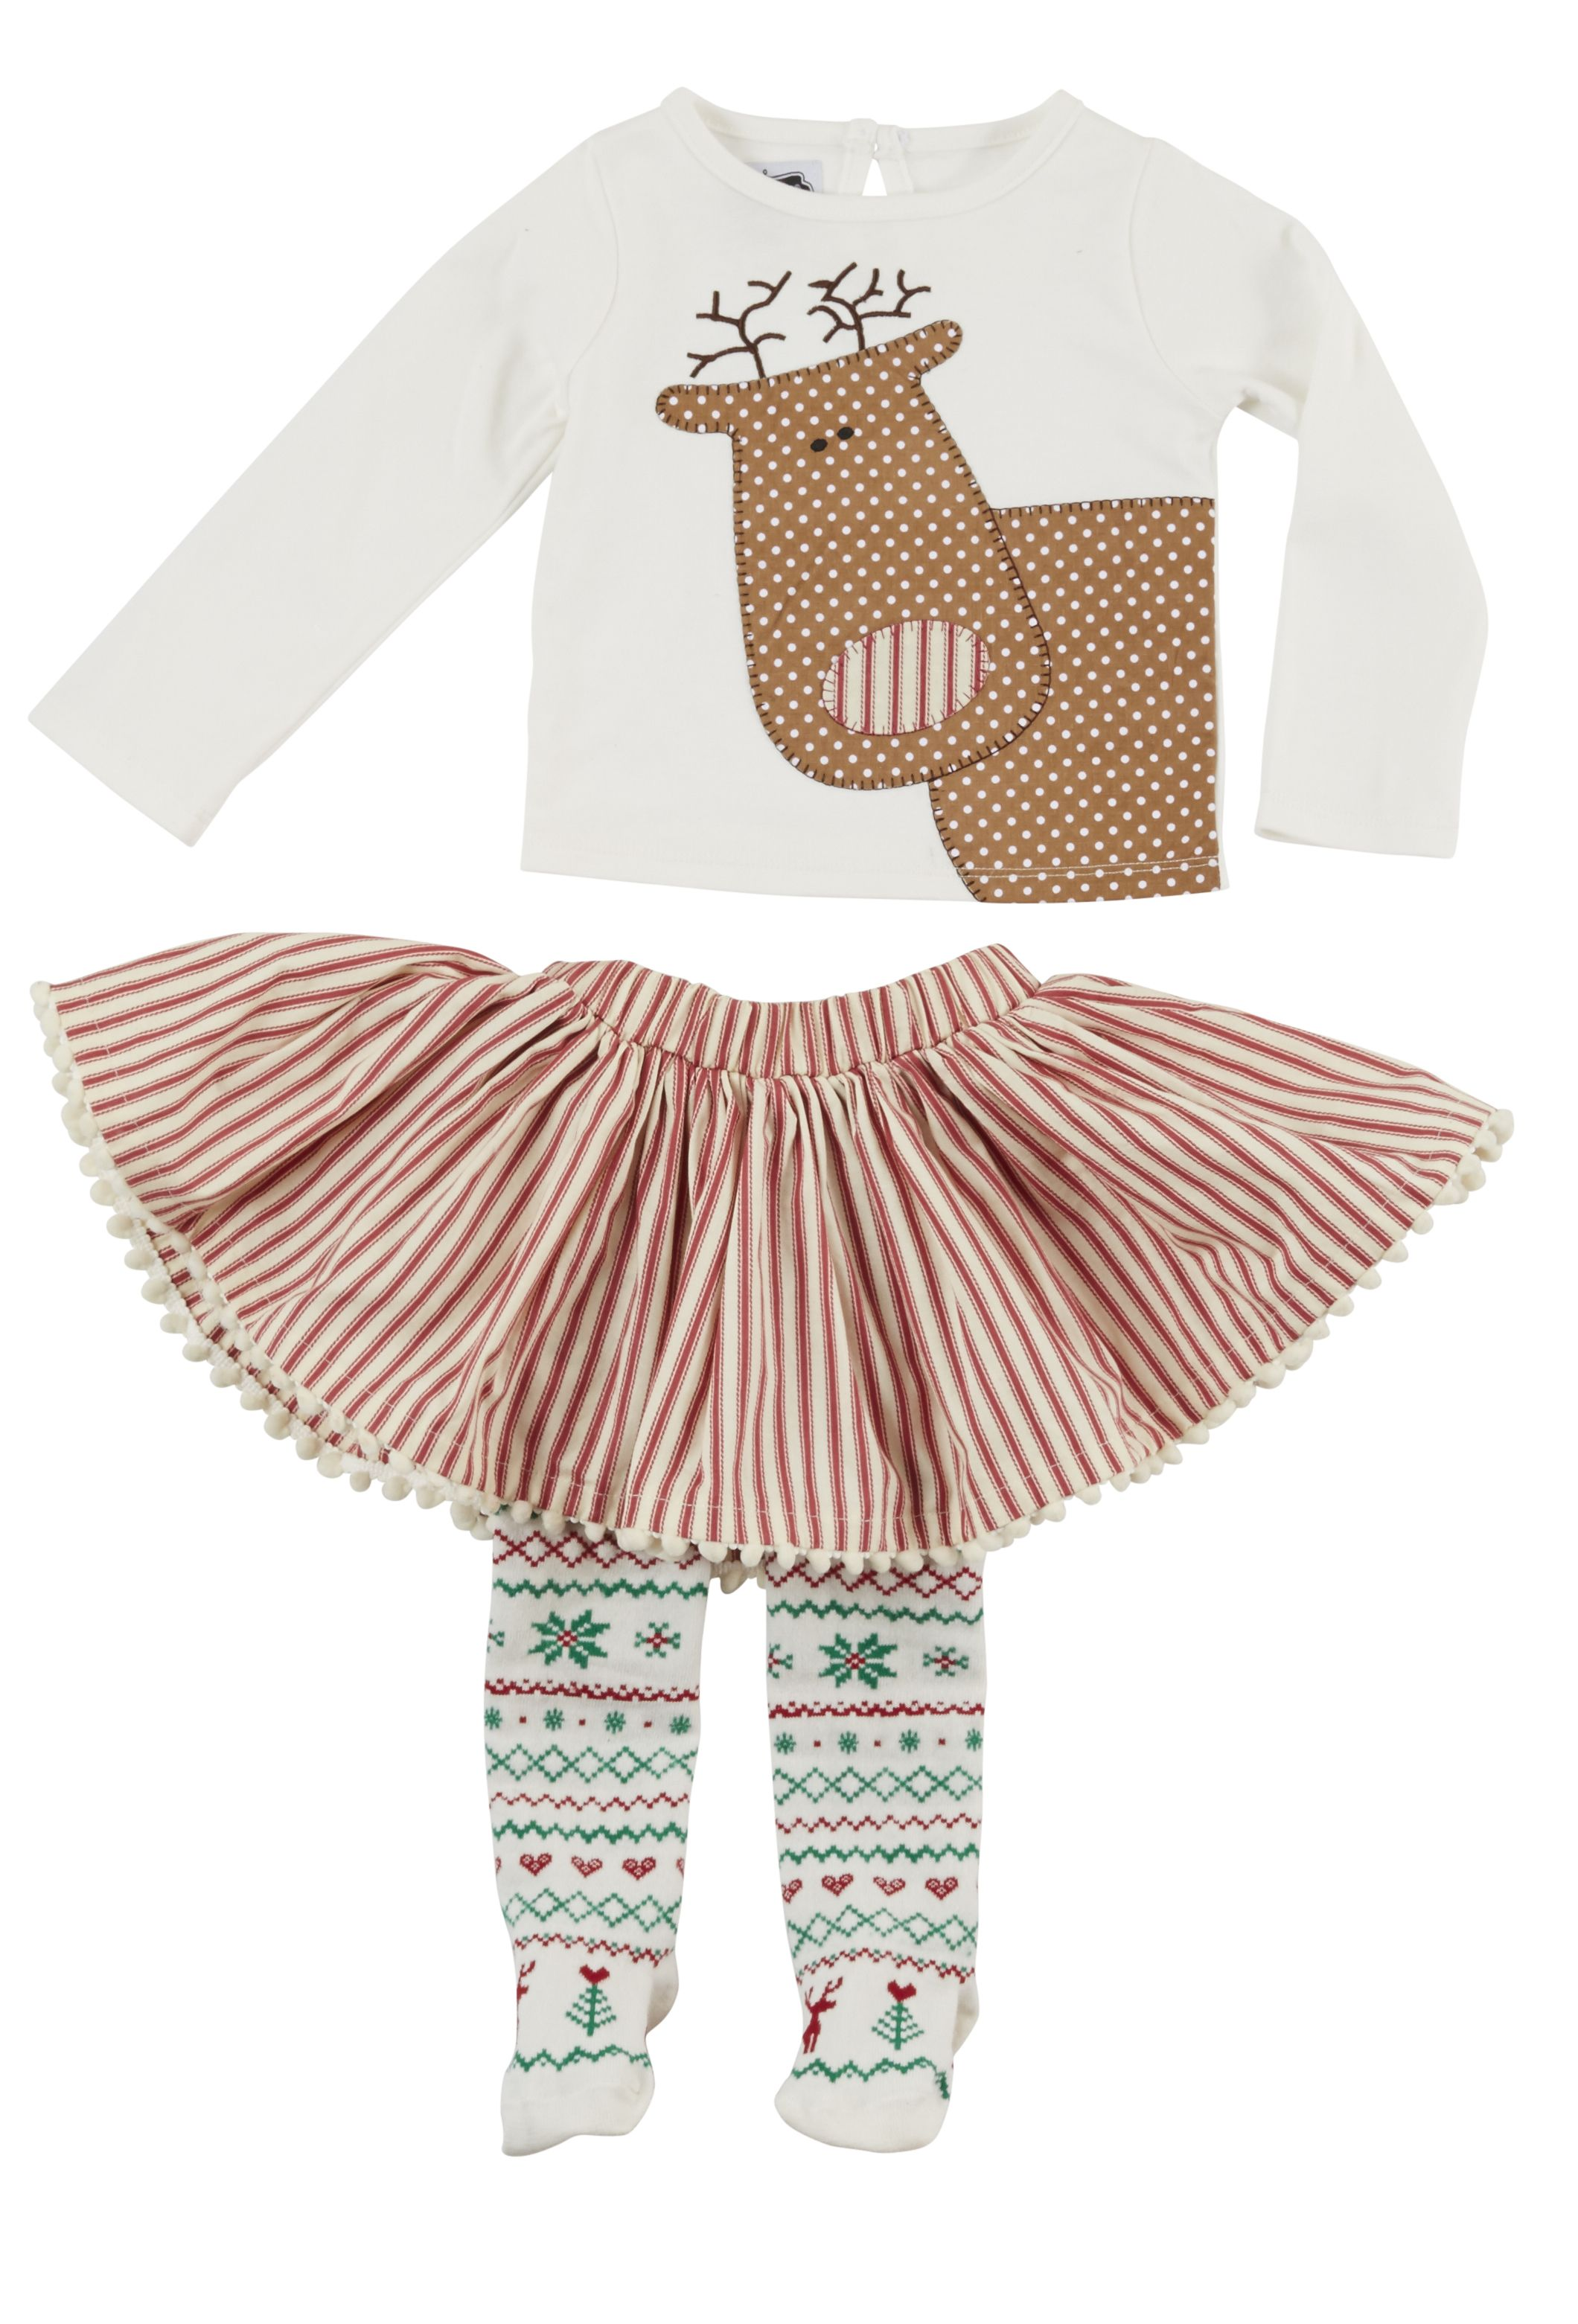 Mud Pie Christmas Holiday Reindeer Skirt Set with Attached Tights